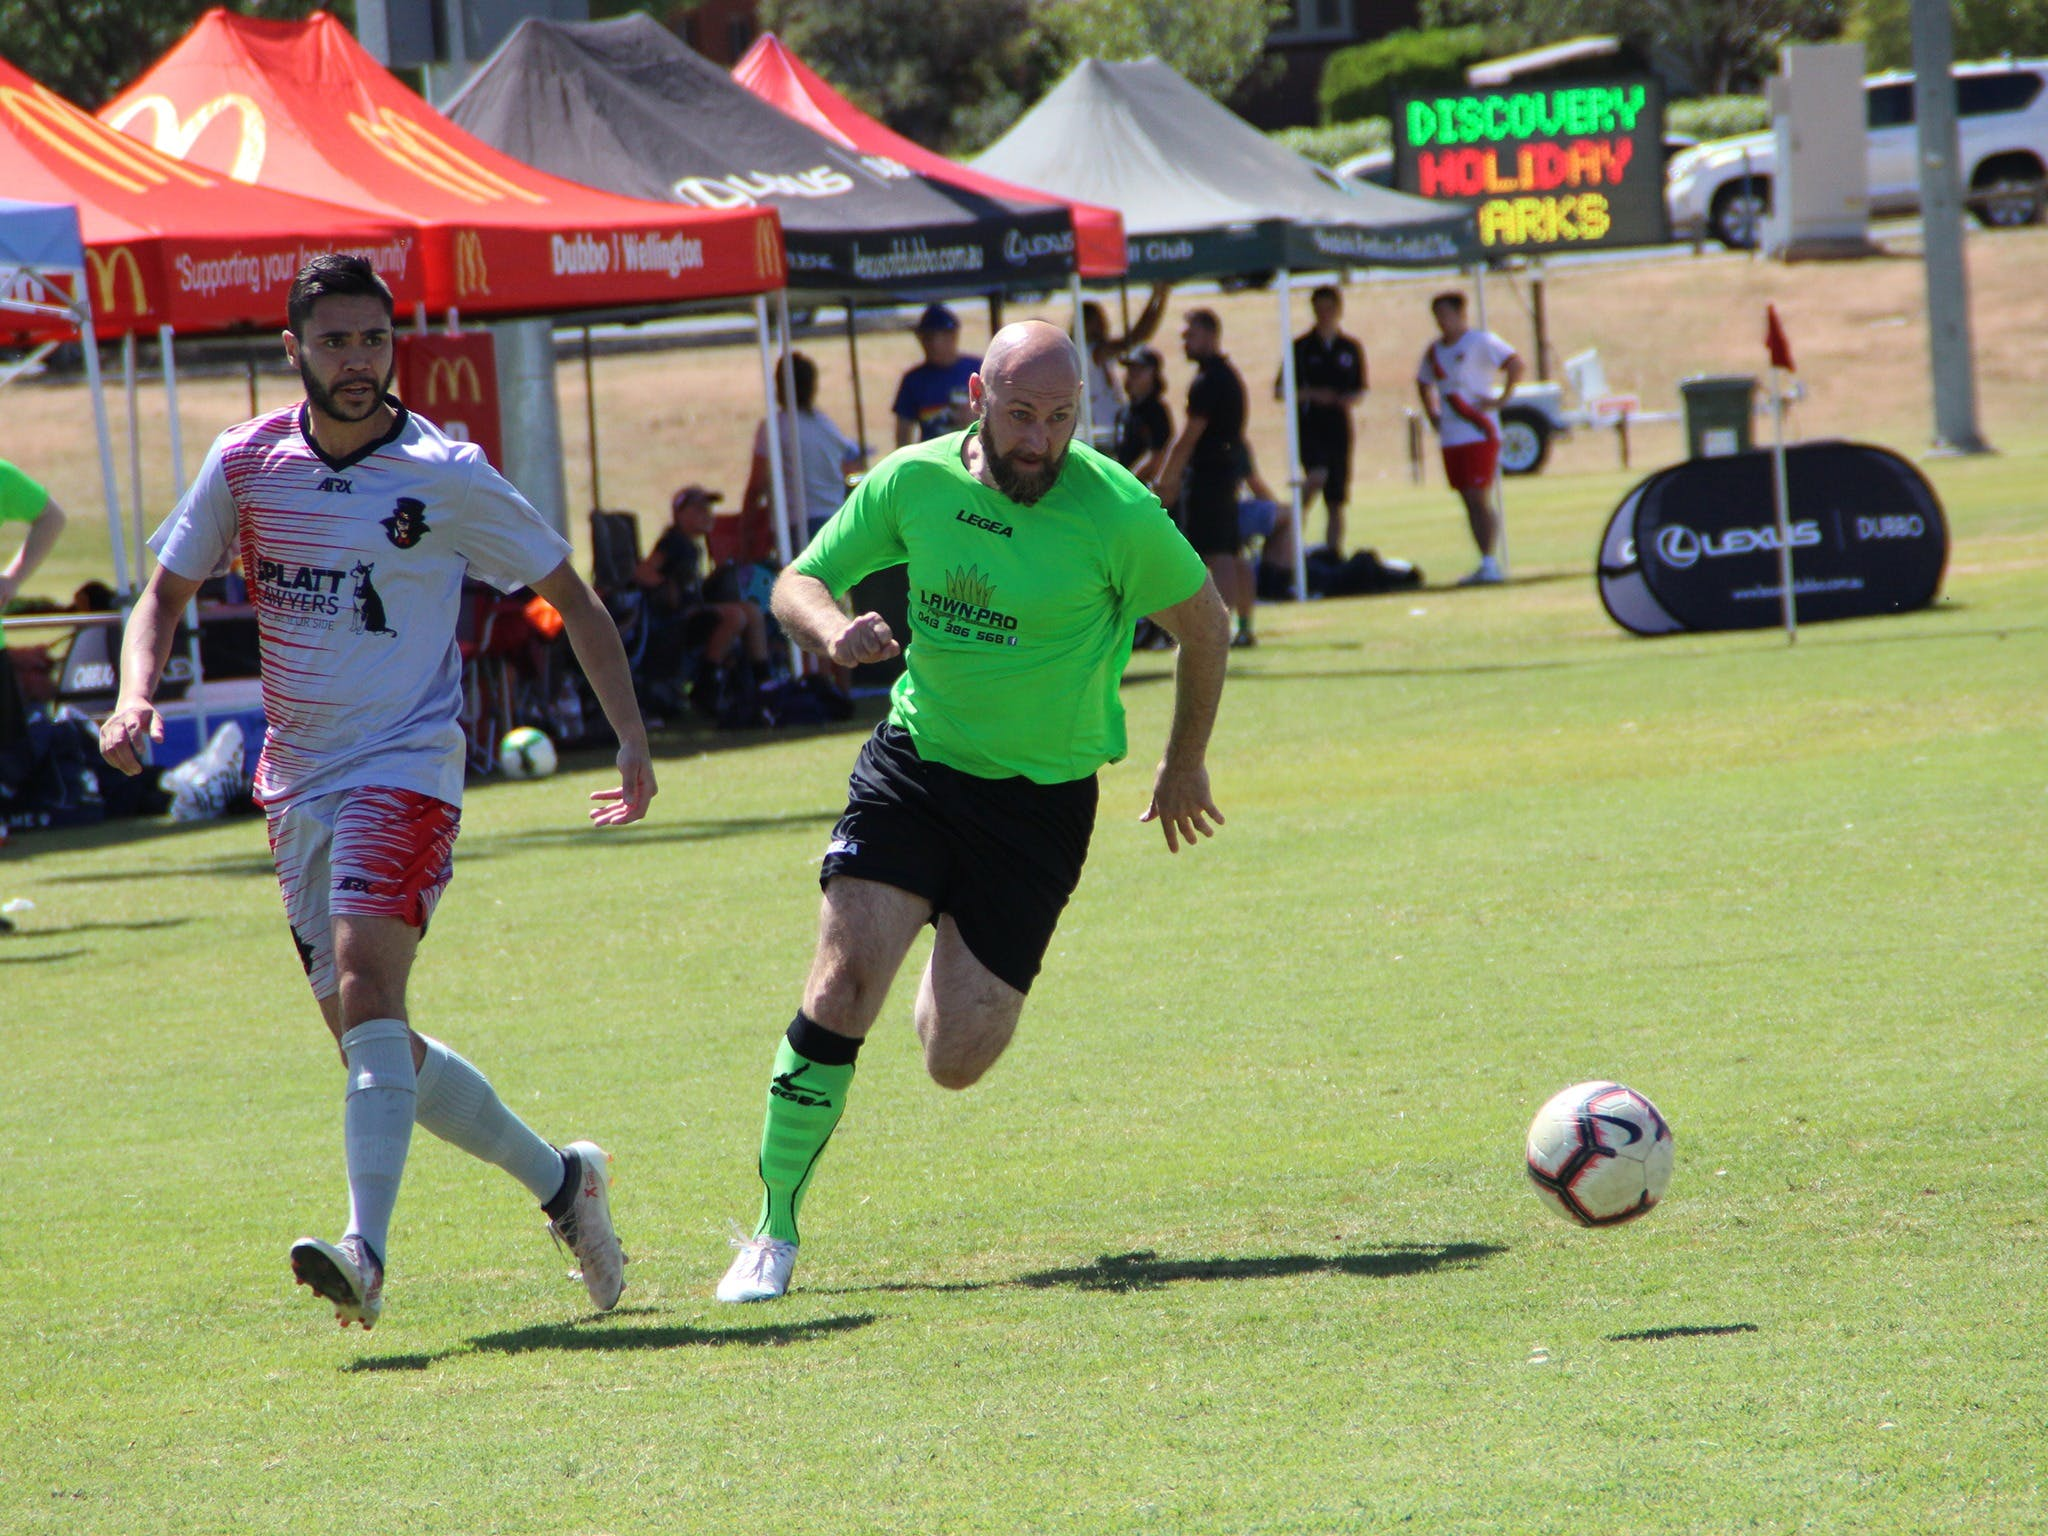 Dubbo Sixes Soccer Tournament - Lightning Ridge Tourism